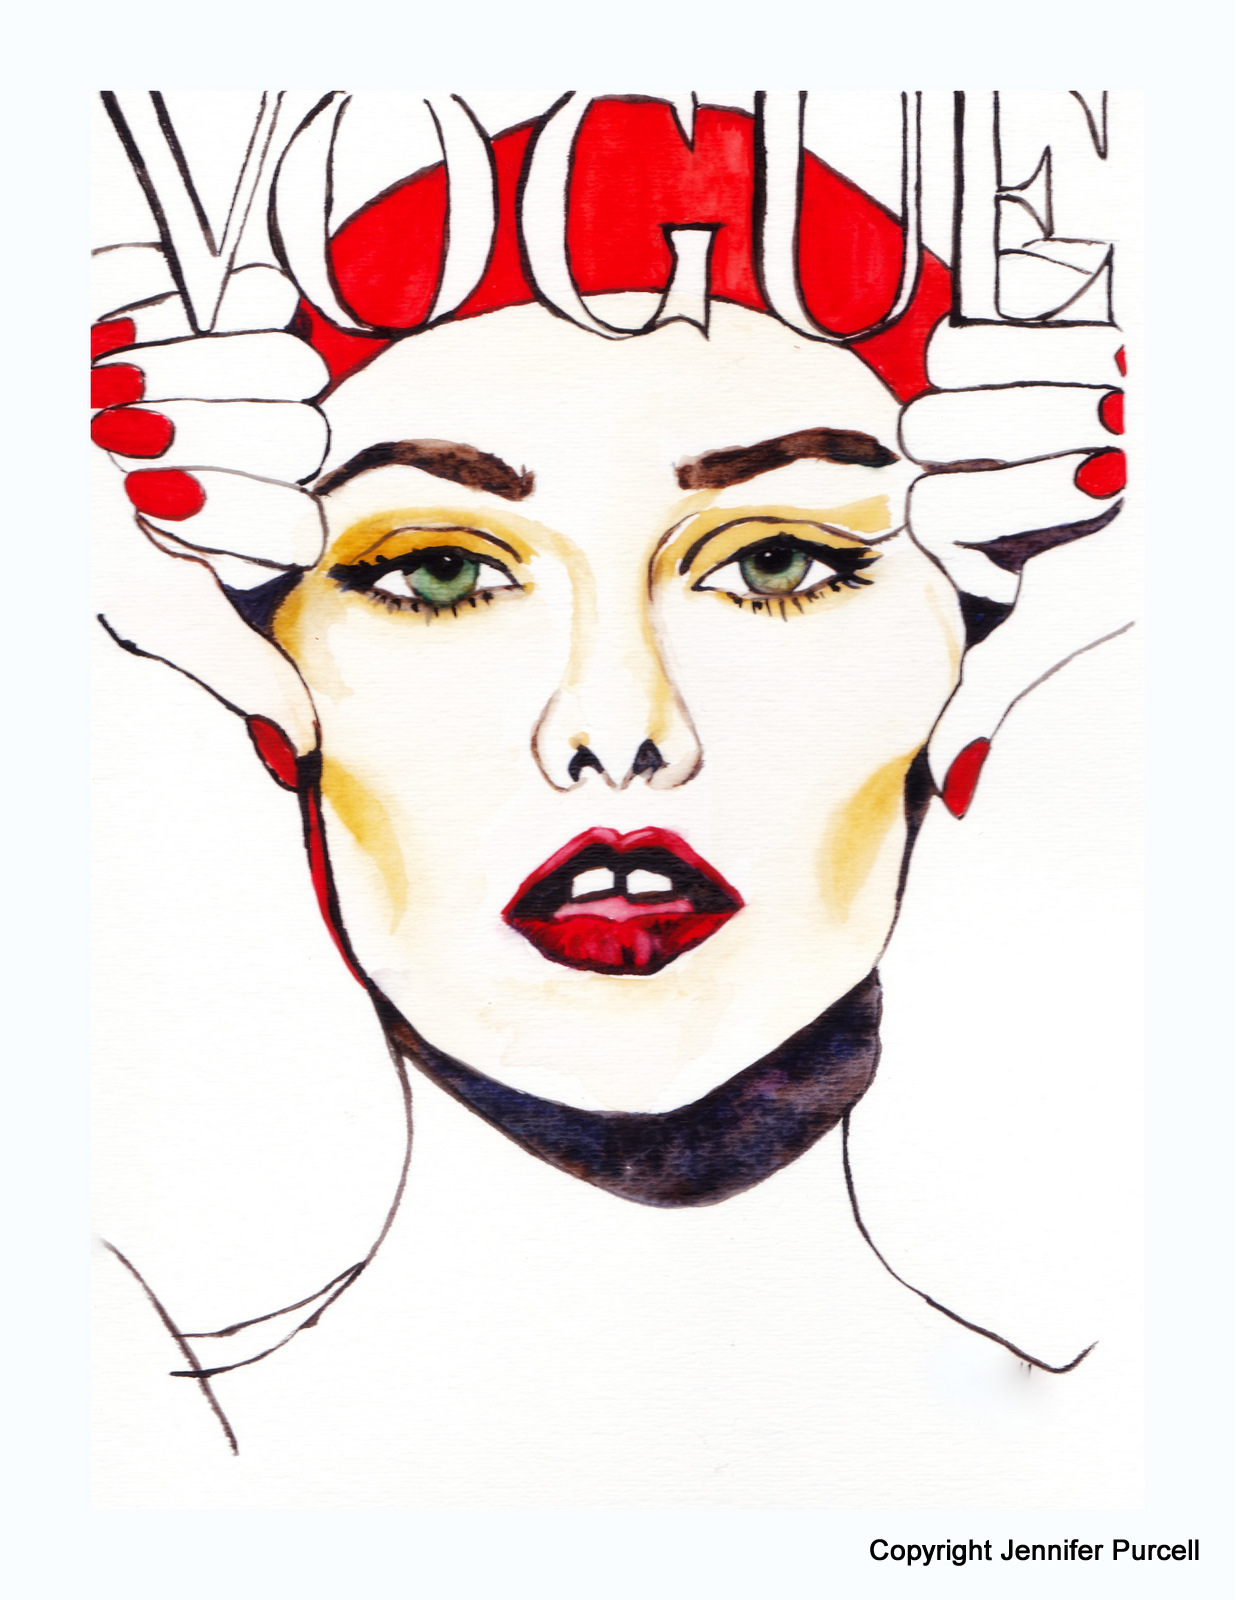 http://4.bp.blogspot.com/-lFdkL070CJI/T0r2Ya0JydI/AAAAAAAAASQ/wr2g66xMVeo/s1600/Fashion+Illustration+Vogue+Cover+Vanessa+Paridis.jpg